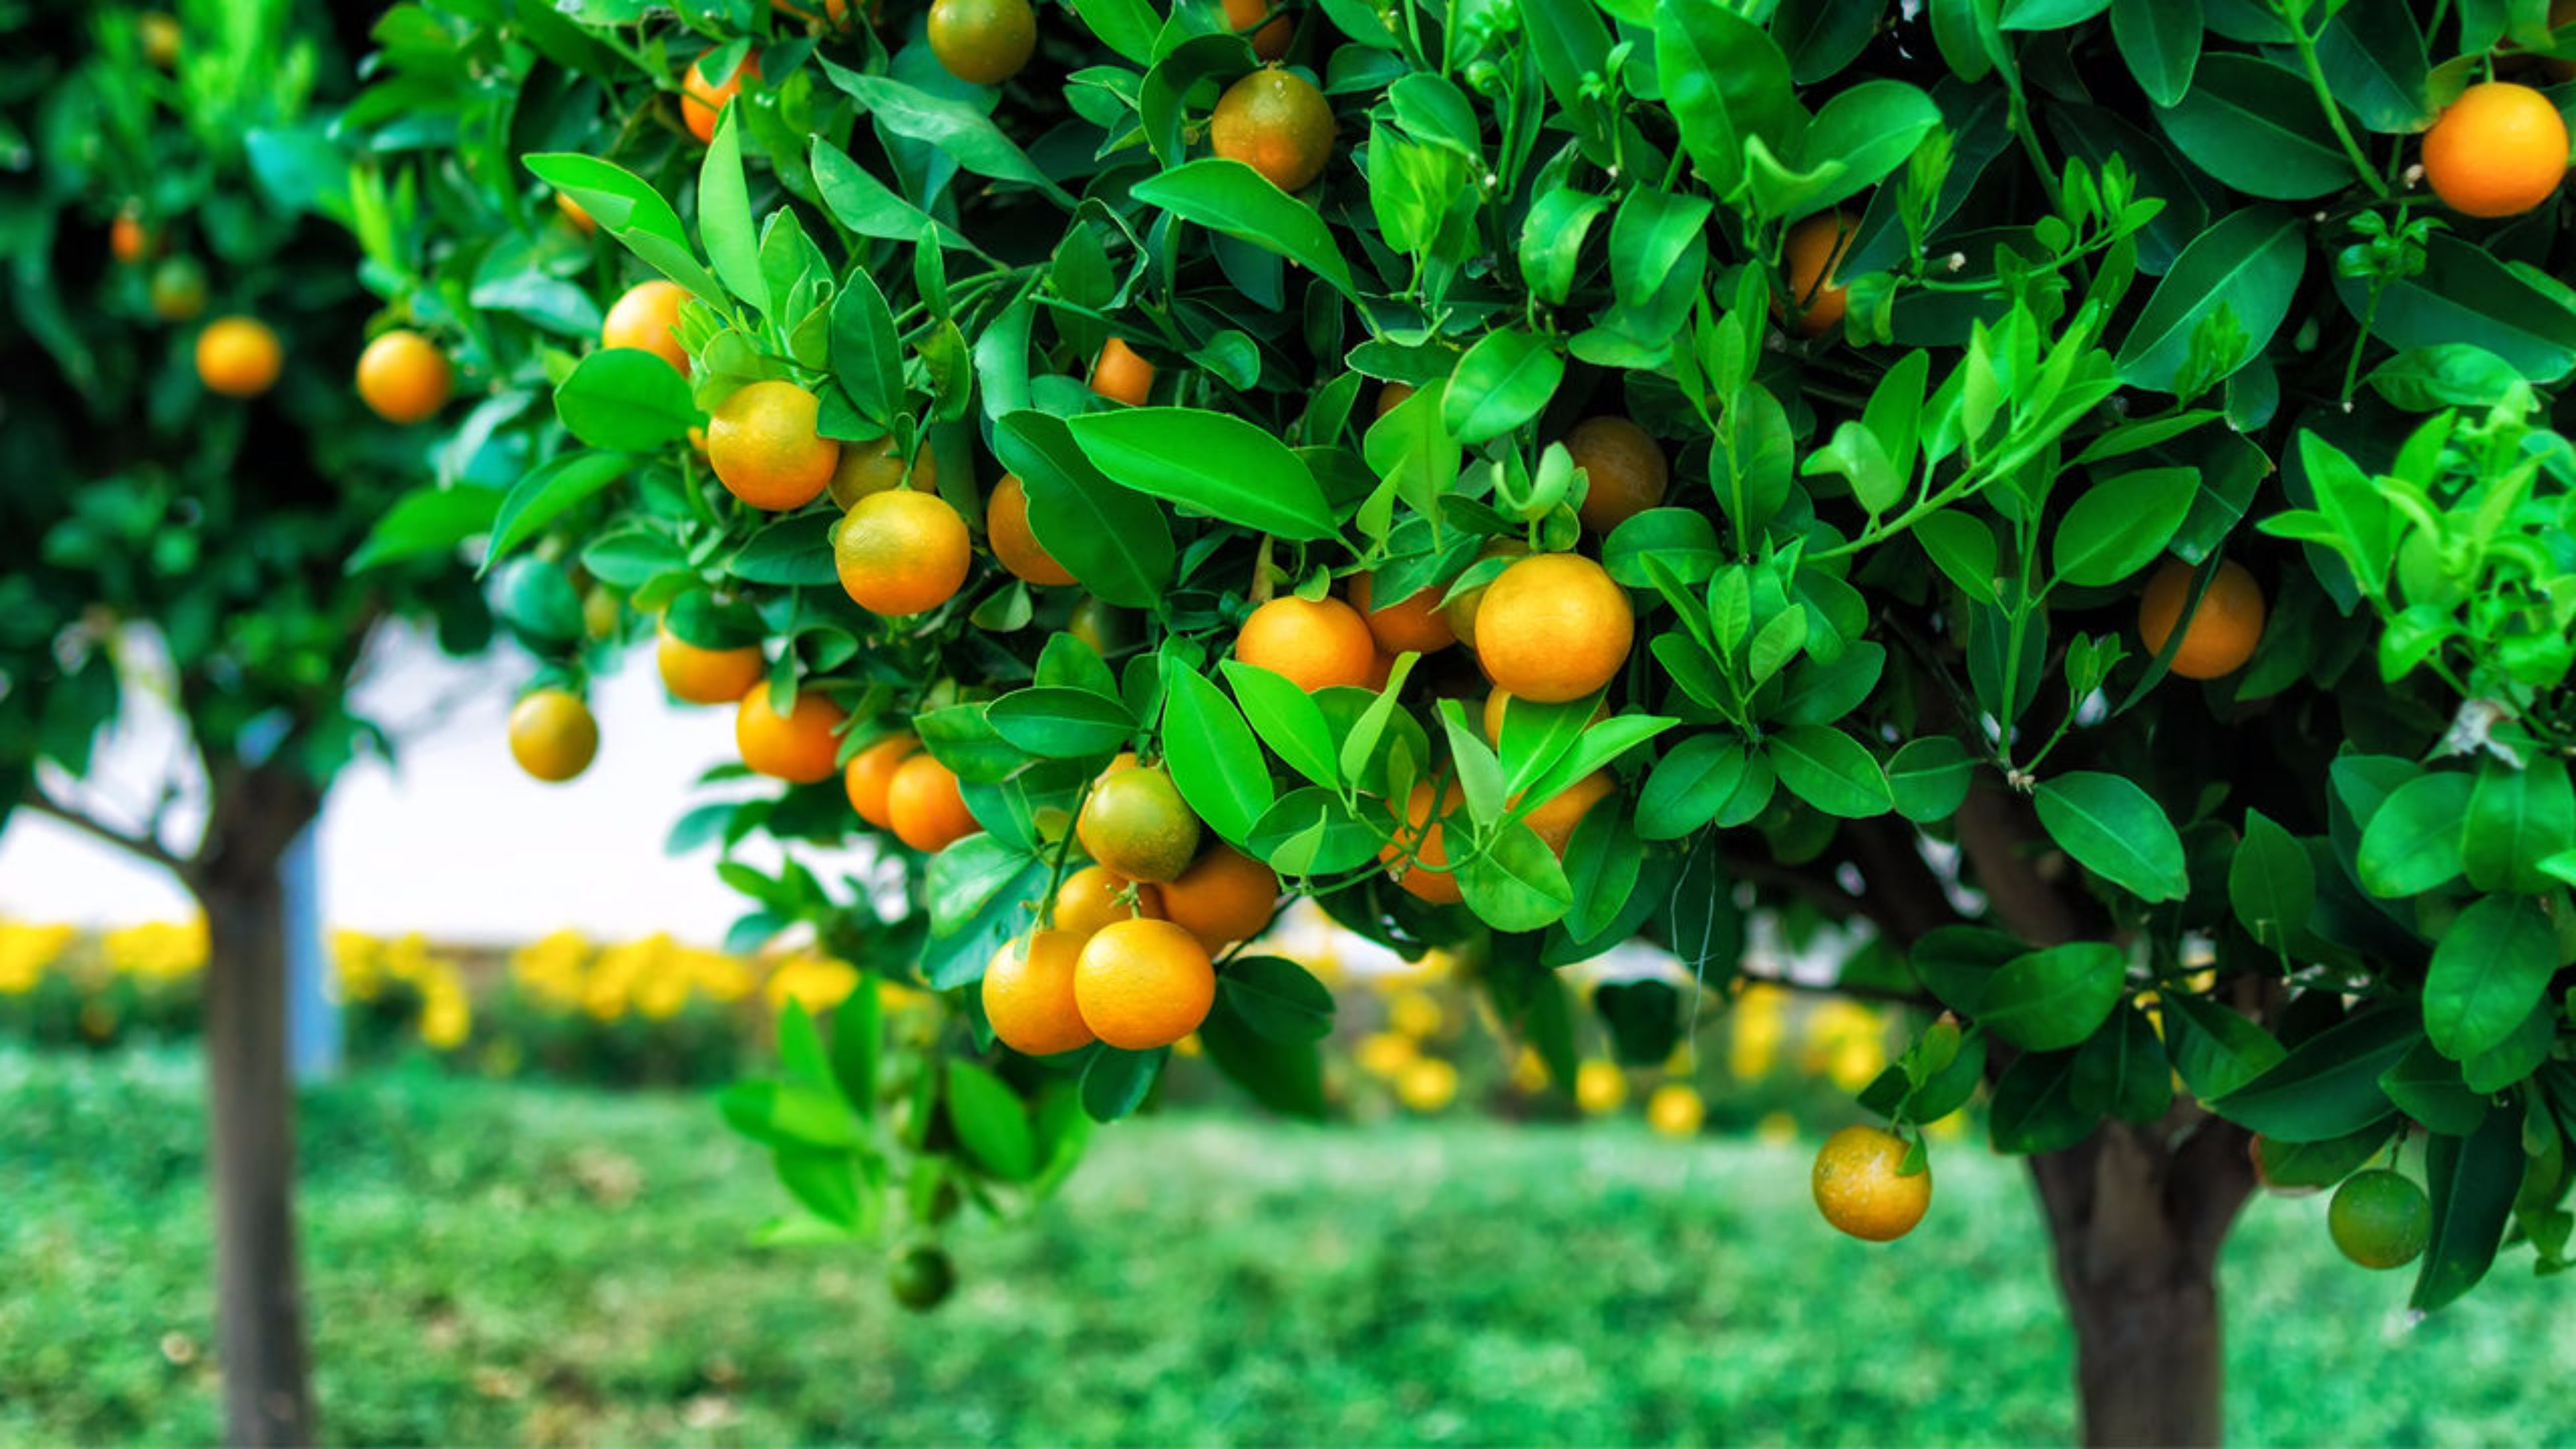 Fruit Tree Wallpapers Top Free Fruit Tree Backgrounds Wallpaperaccess